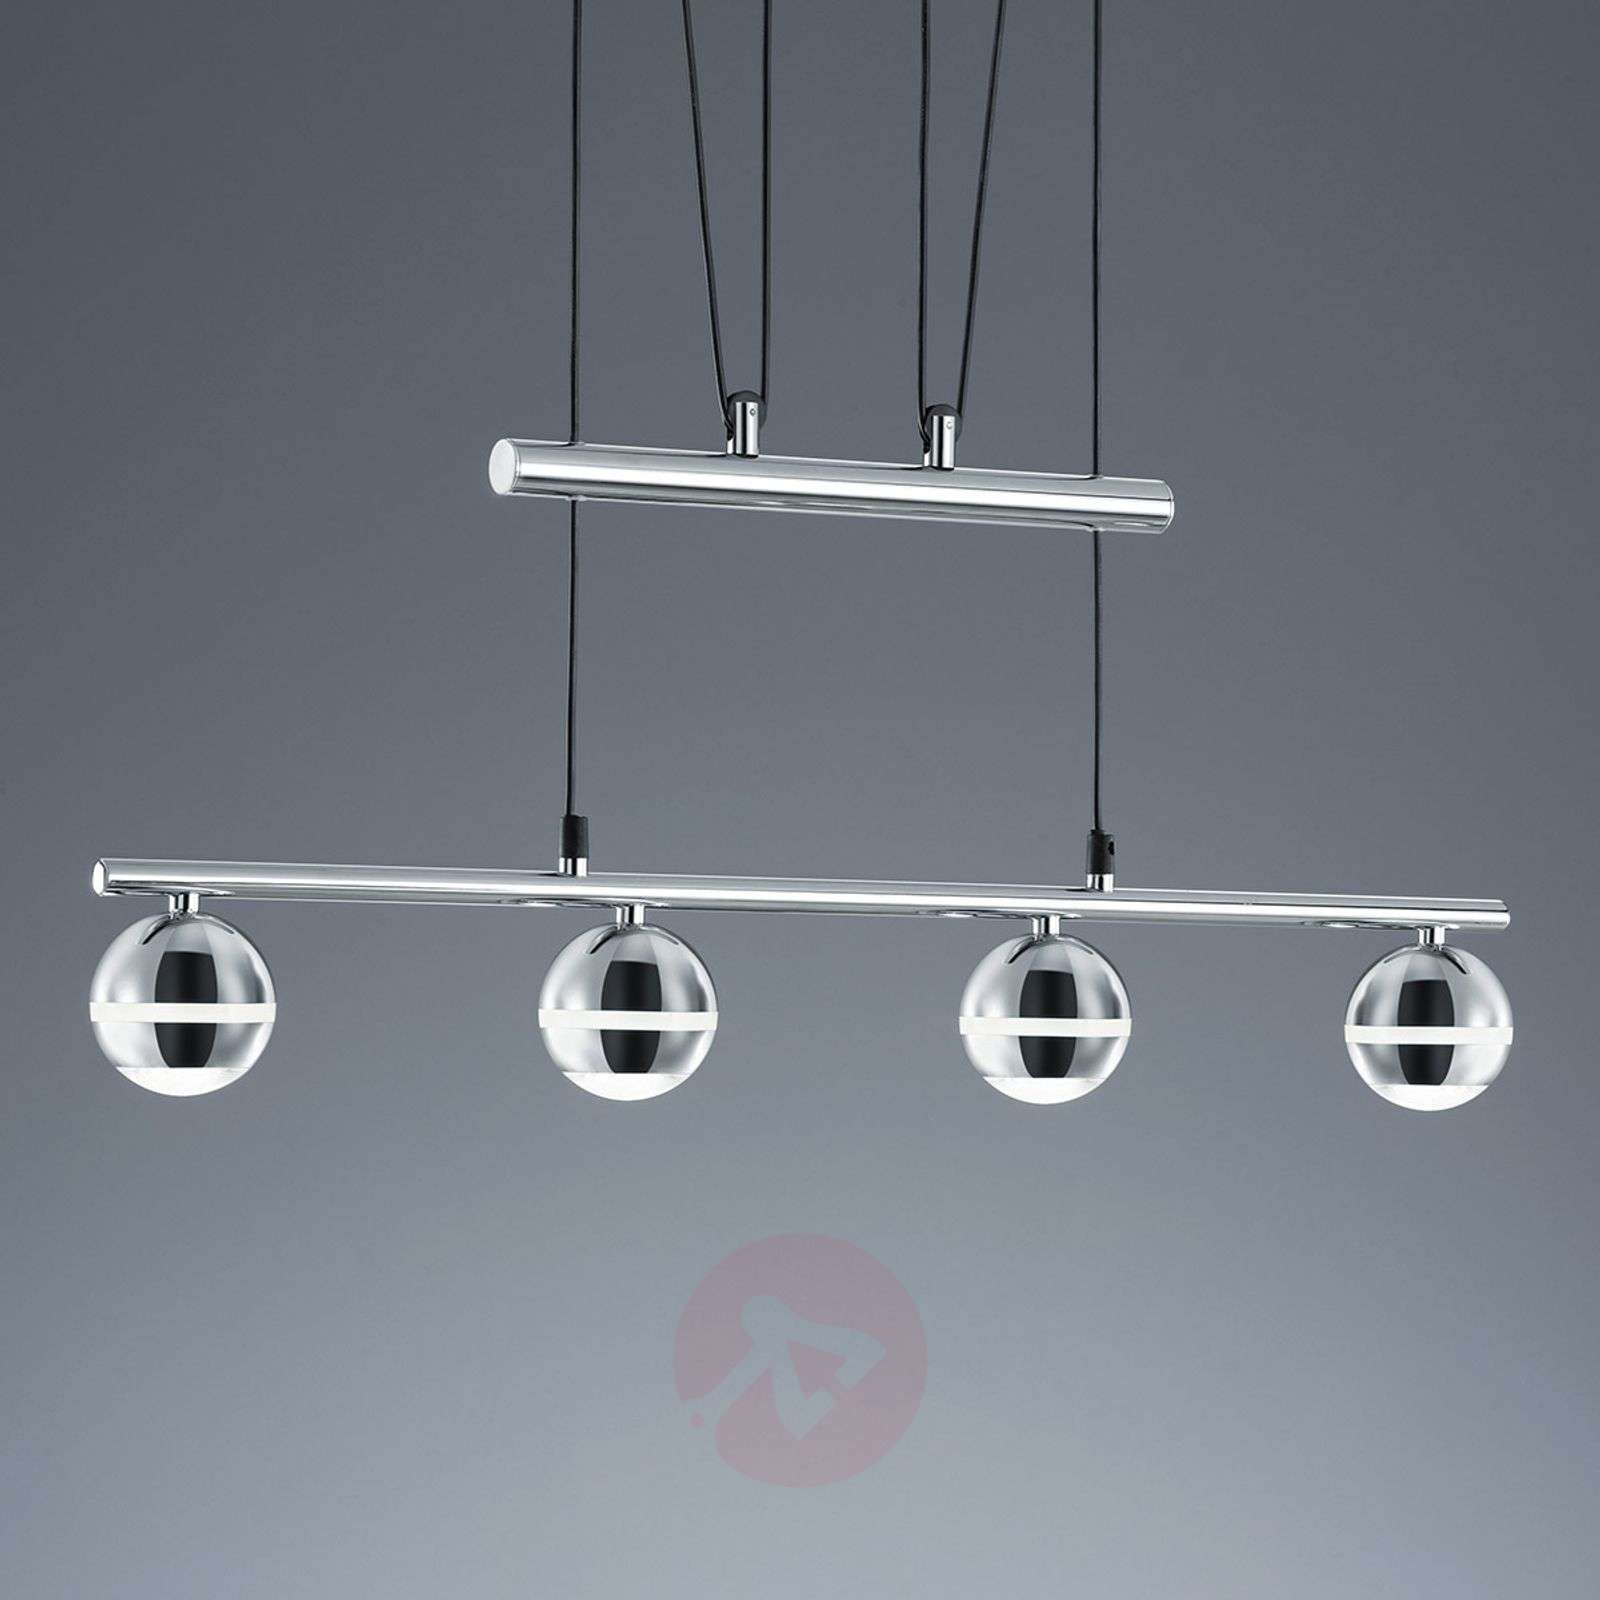 Height Adjustable Led Pendant Light Drop: Ada LED Pendant Light, Height-adjustable, 4 Bulbs